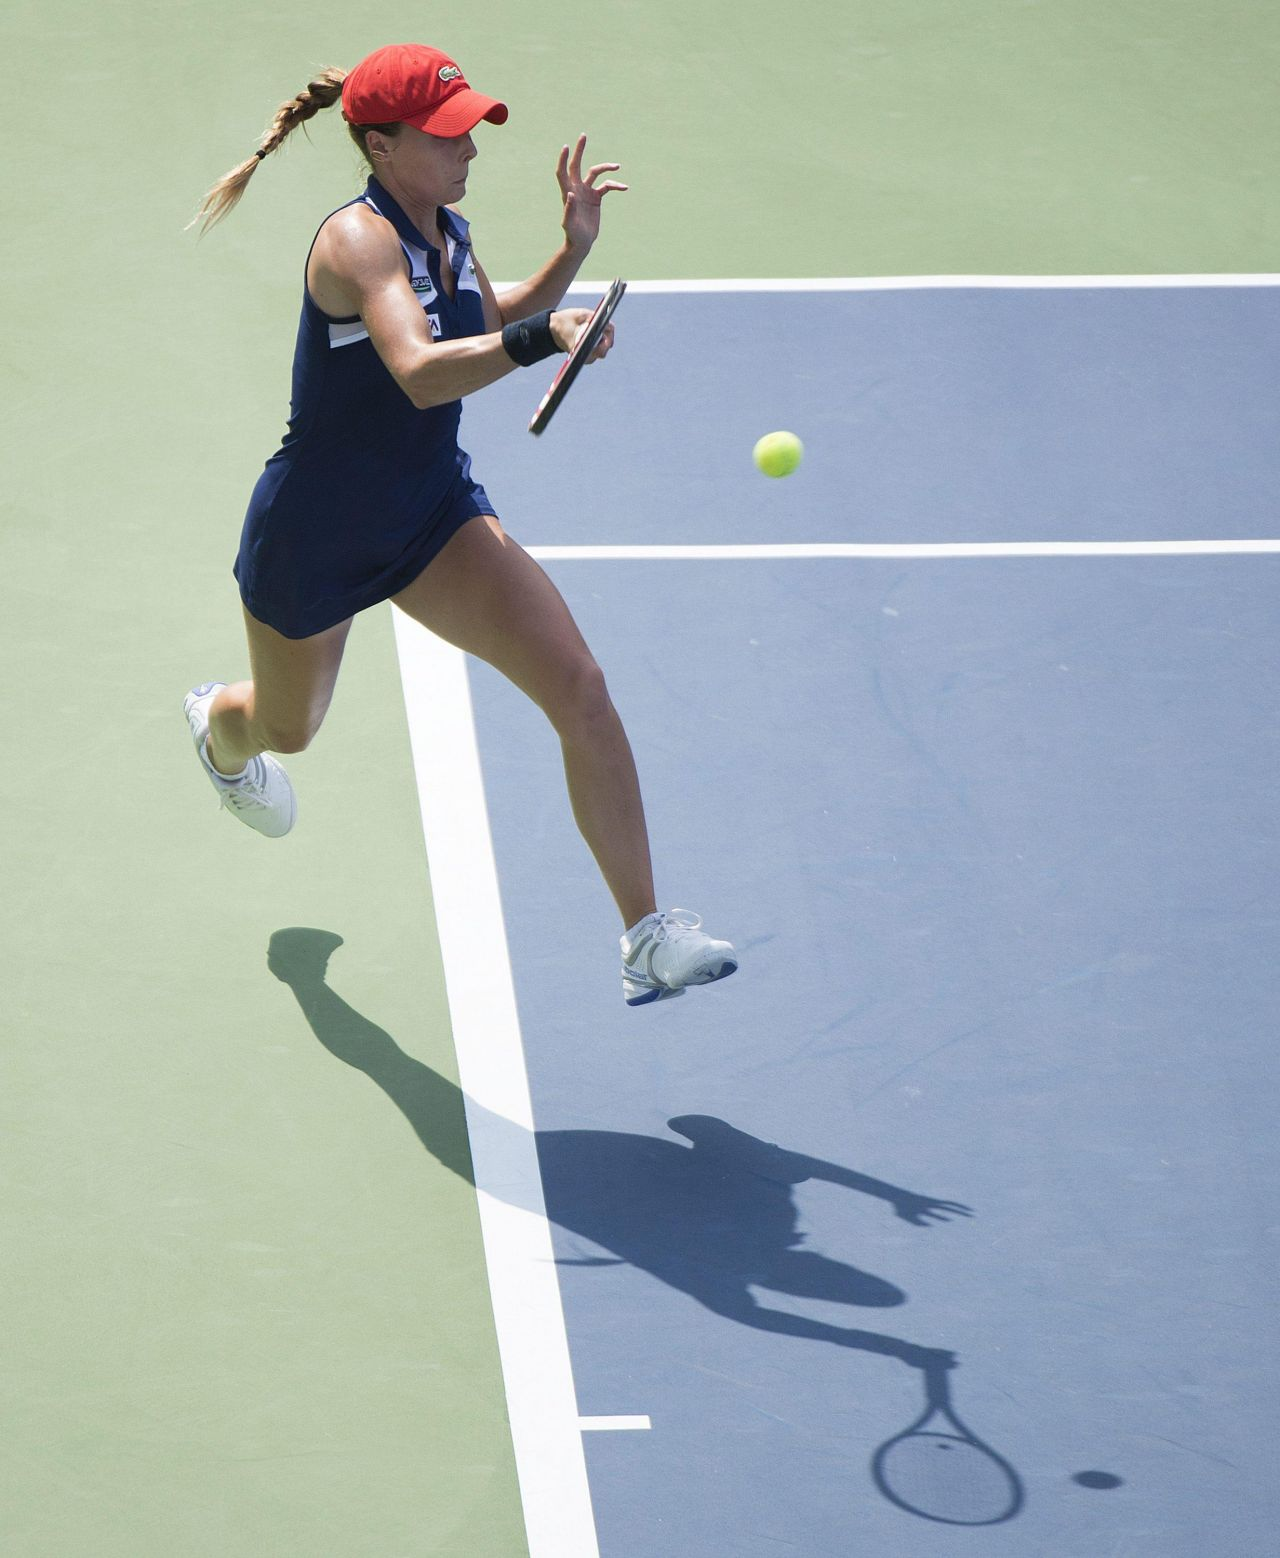 Alize Cornet - Rogers Cup 2014 in Montreal, Canada - 1st Round